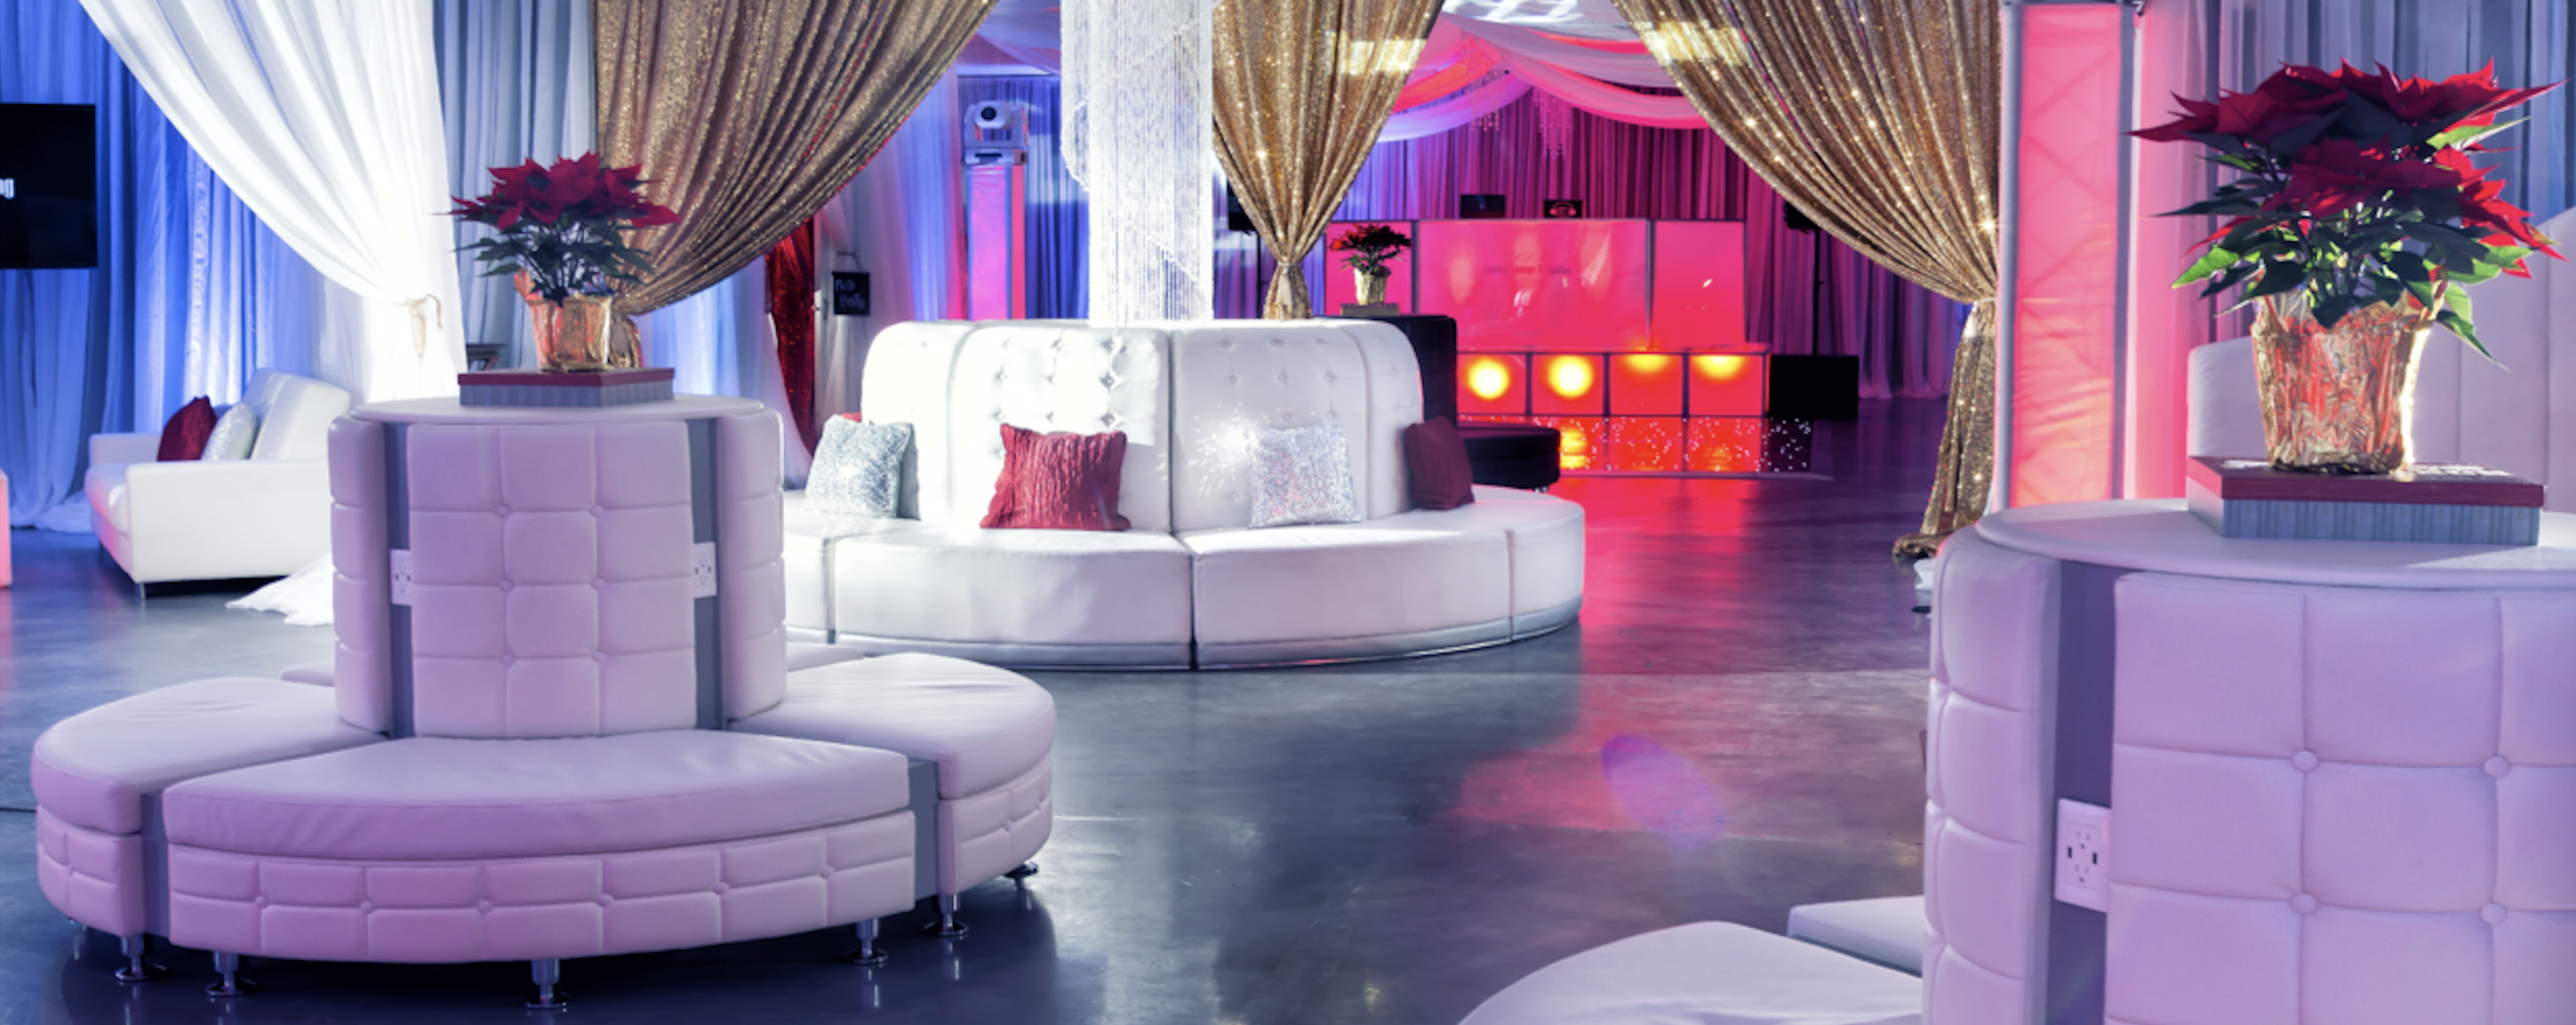 Luxury Lounge Amp Lighting Lounge Furniture And Event